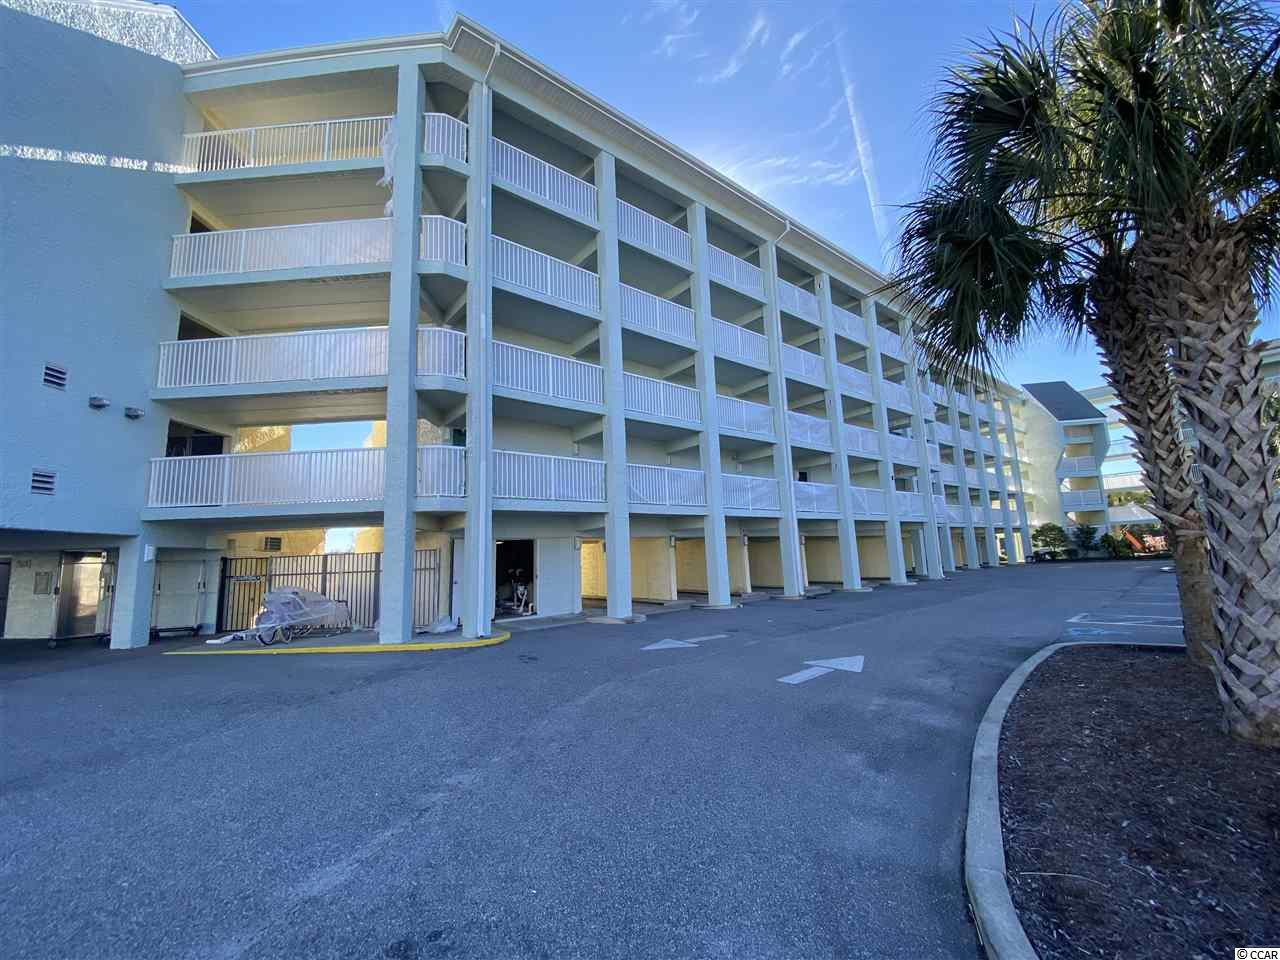 Perfect location right in the middle of Litchfield Beach. This 1 bed, 1 bath condo with granite counter tops has a balcony over looking the pool area. Just minutes from the ocean, this condo is set up up for a great vacation property. There are many amenities available for use in the complex. This property can also be used as an excellent rental.